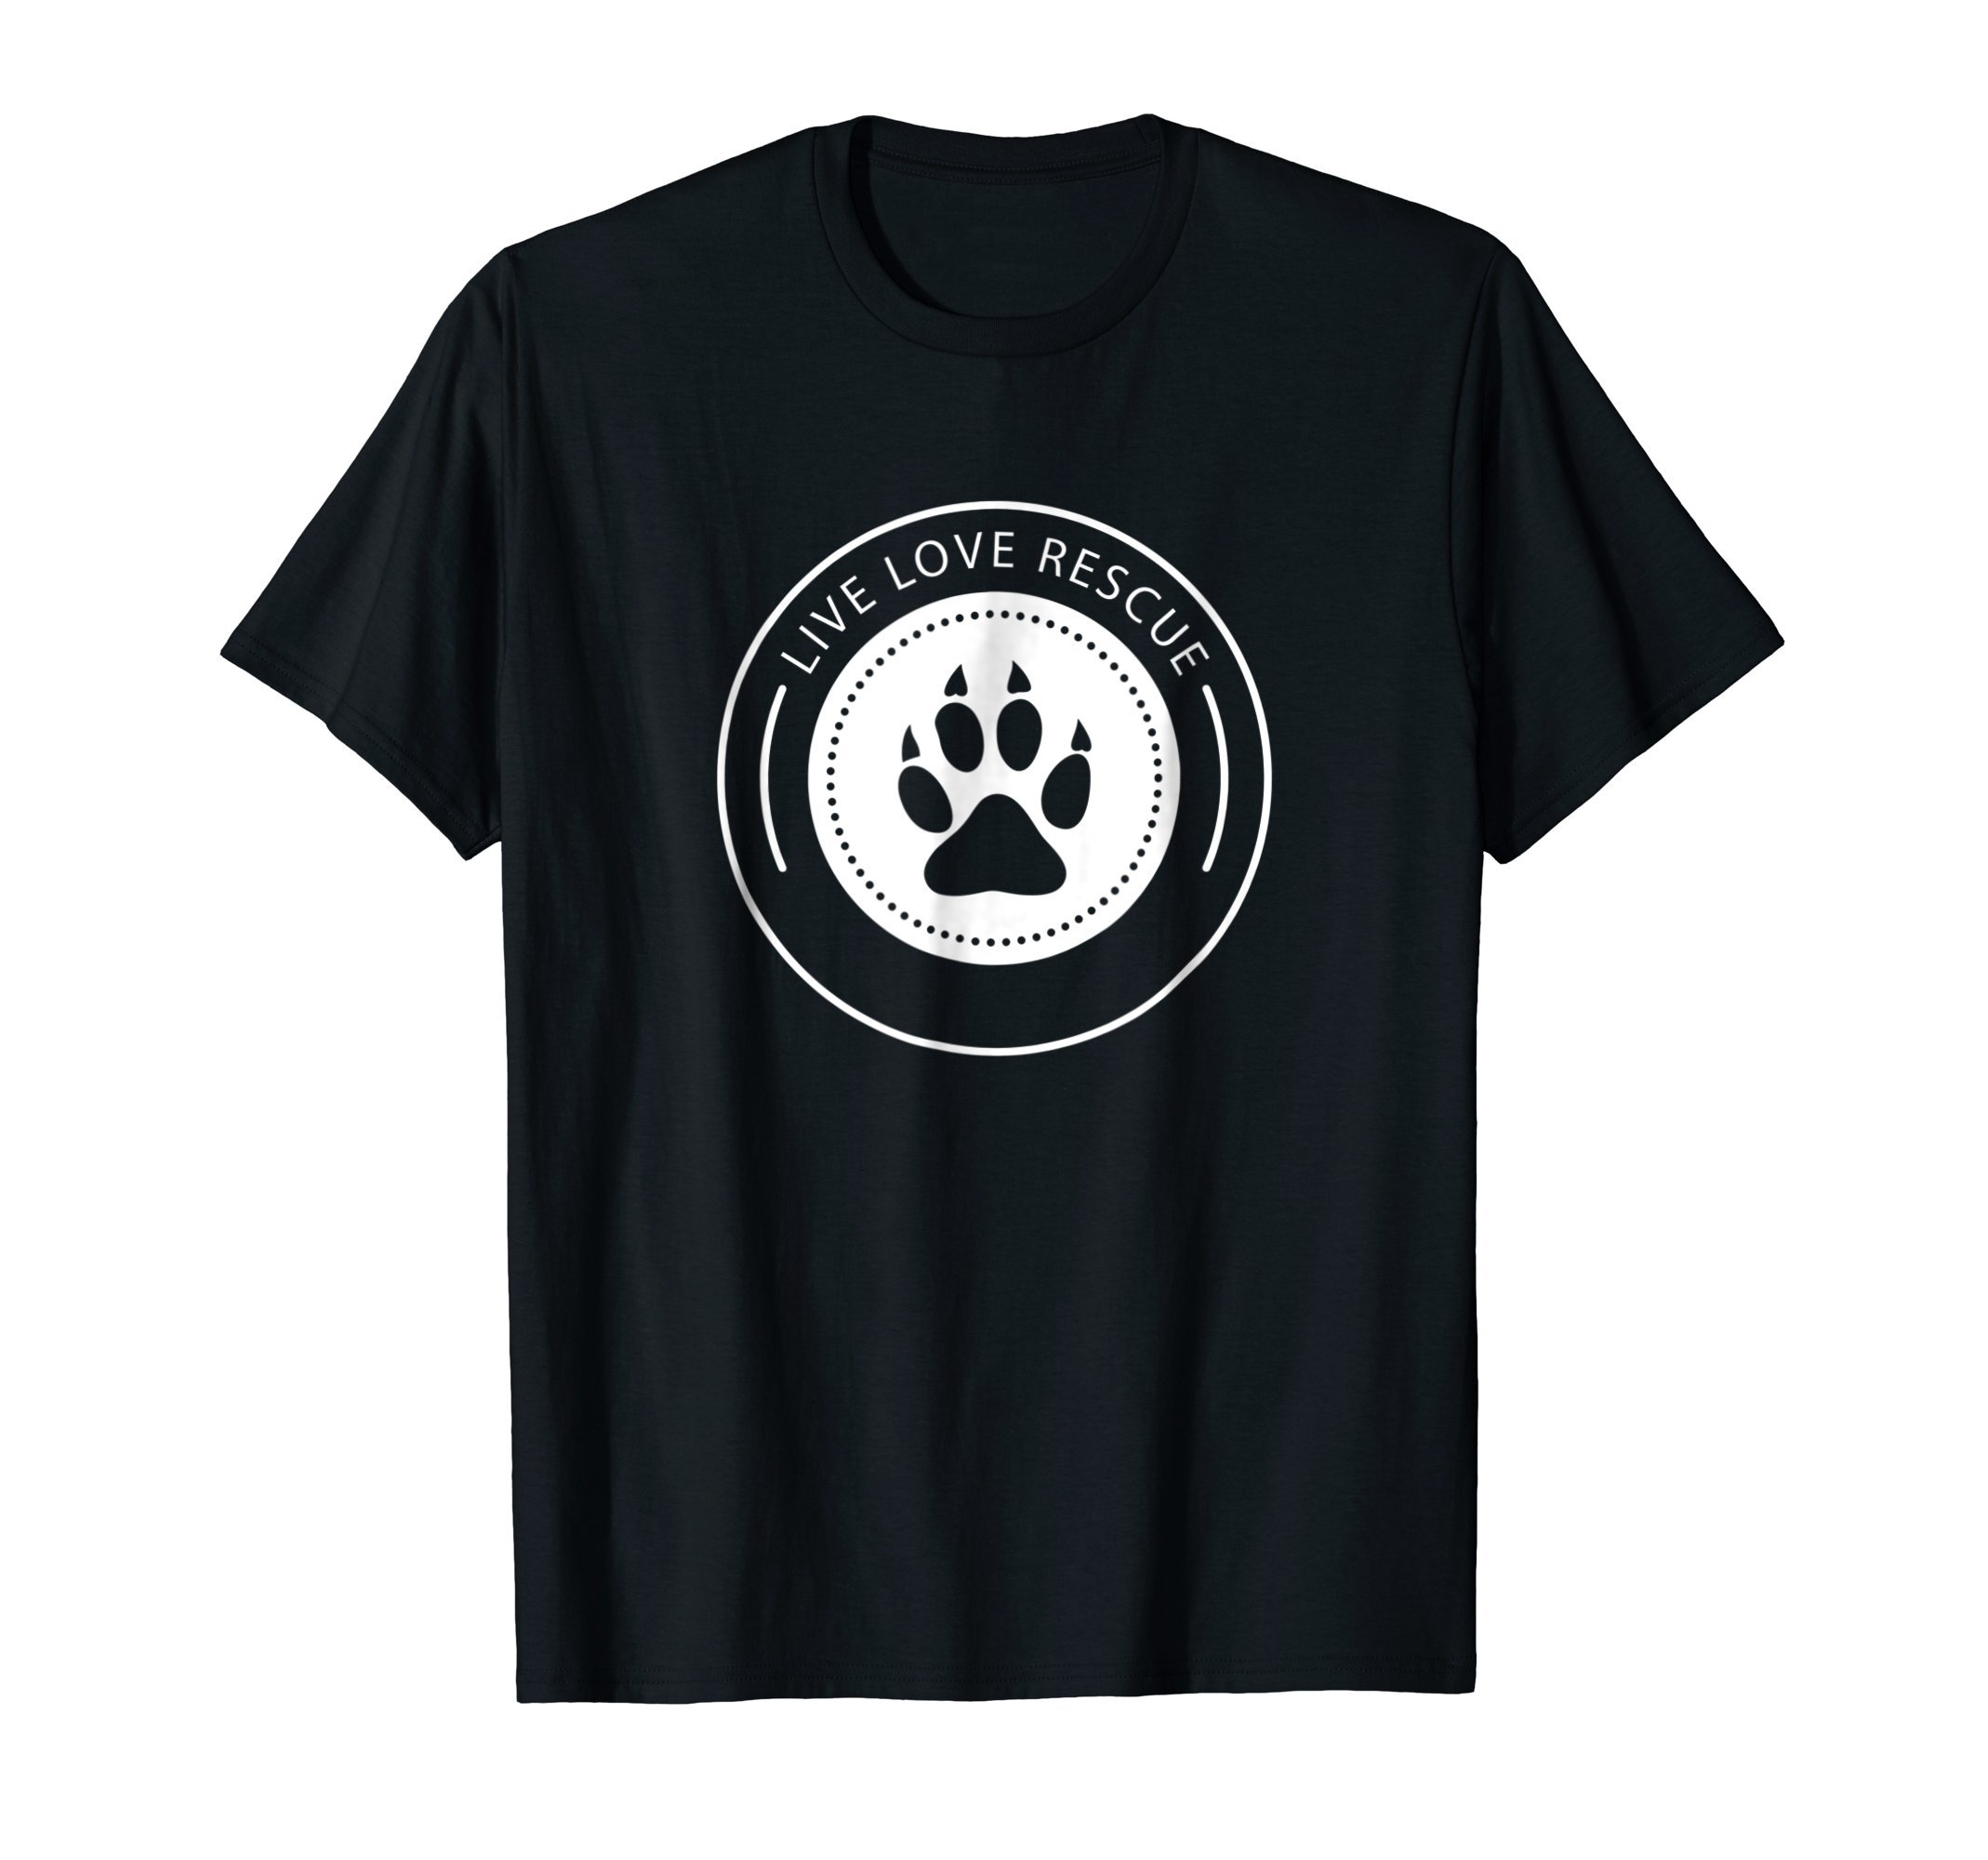 Rescue Animals Shirt Cat and Dog Shirt | Adopt a Pet T-Shirt by Animal Rescue Shirts 123 (Image #1)